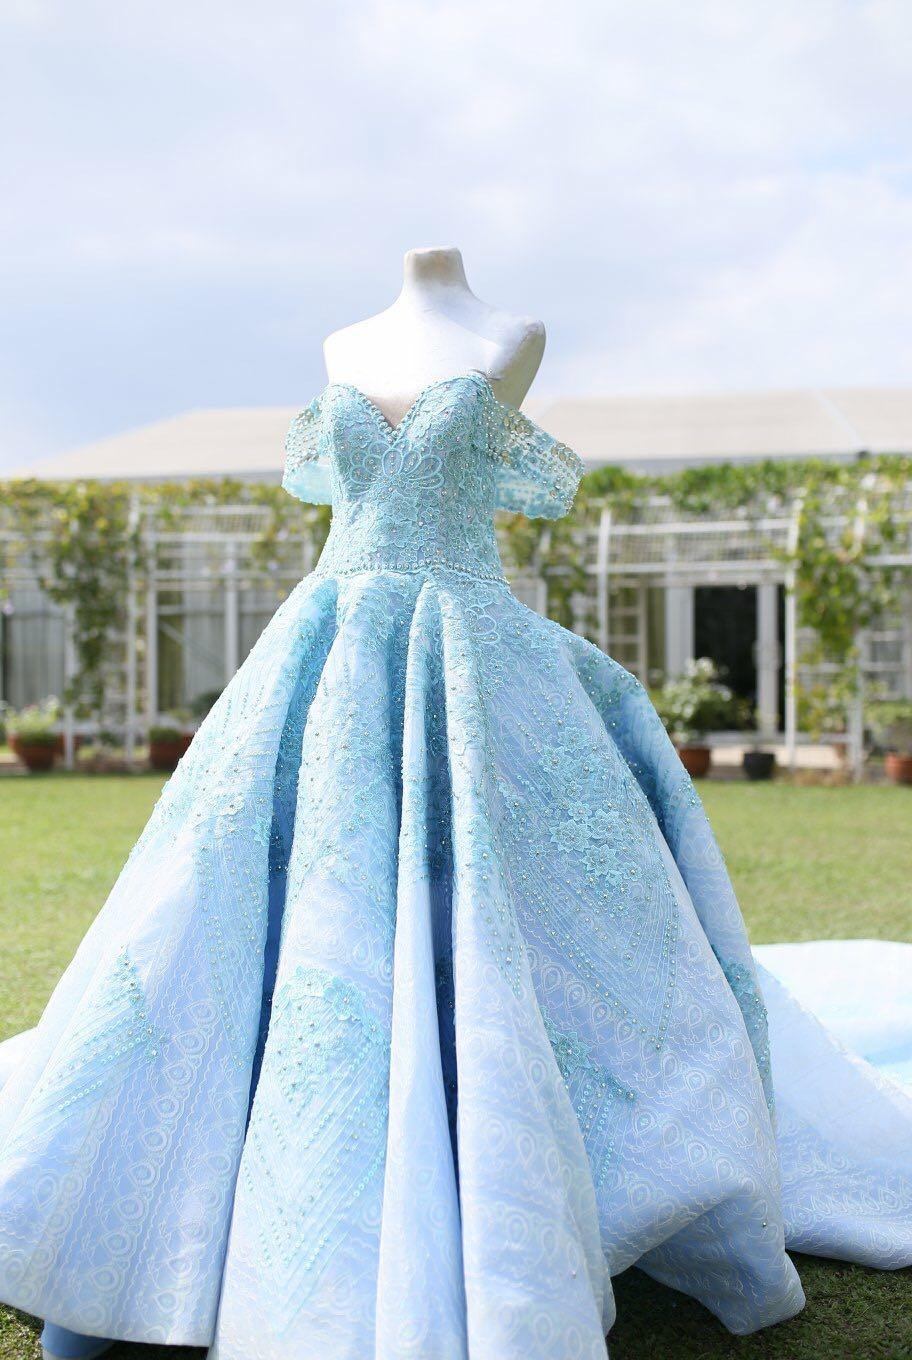 Prom/Debut powder blue ball gown with long train for rent, Women's Fashion,  Dresses & Sets, Traditional & Ethnic wear on Carousell